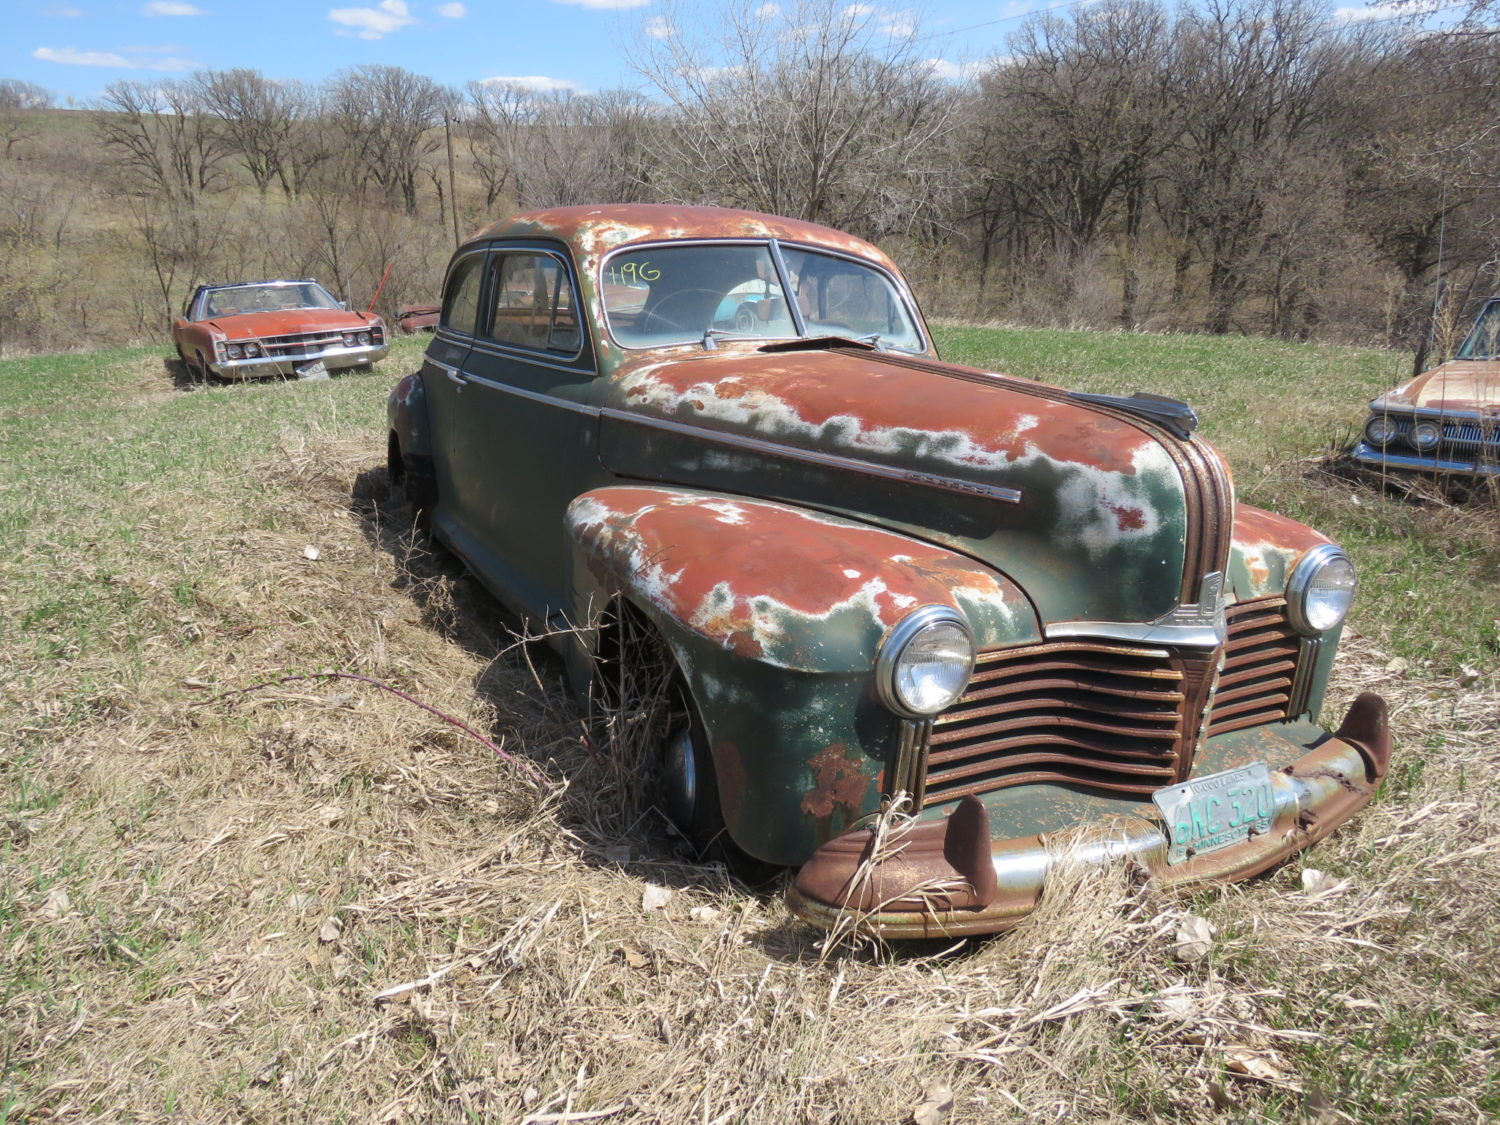 Shop Equipment, Tools, 4-Wheeler, Household & handful of Collector Cars- James Graham Estate - image 2